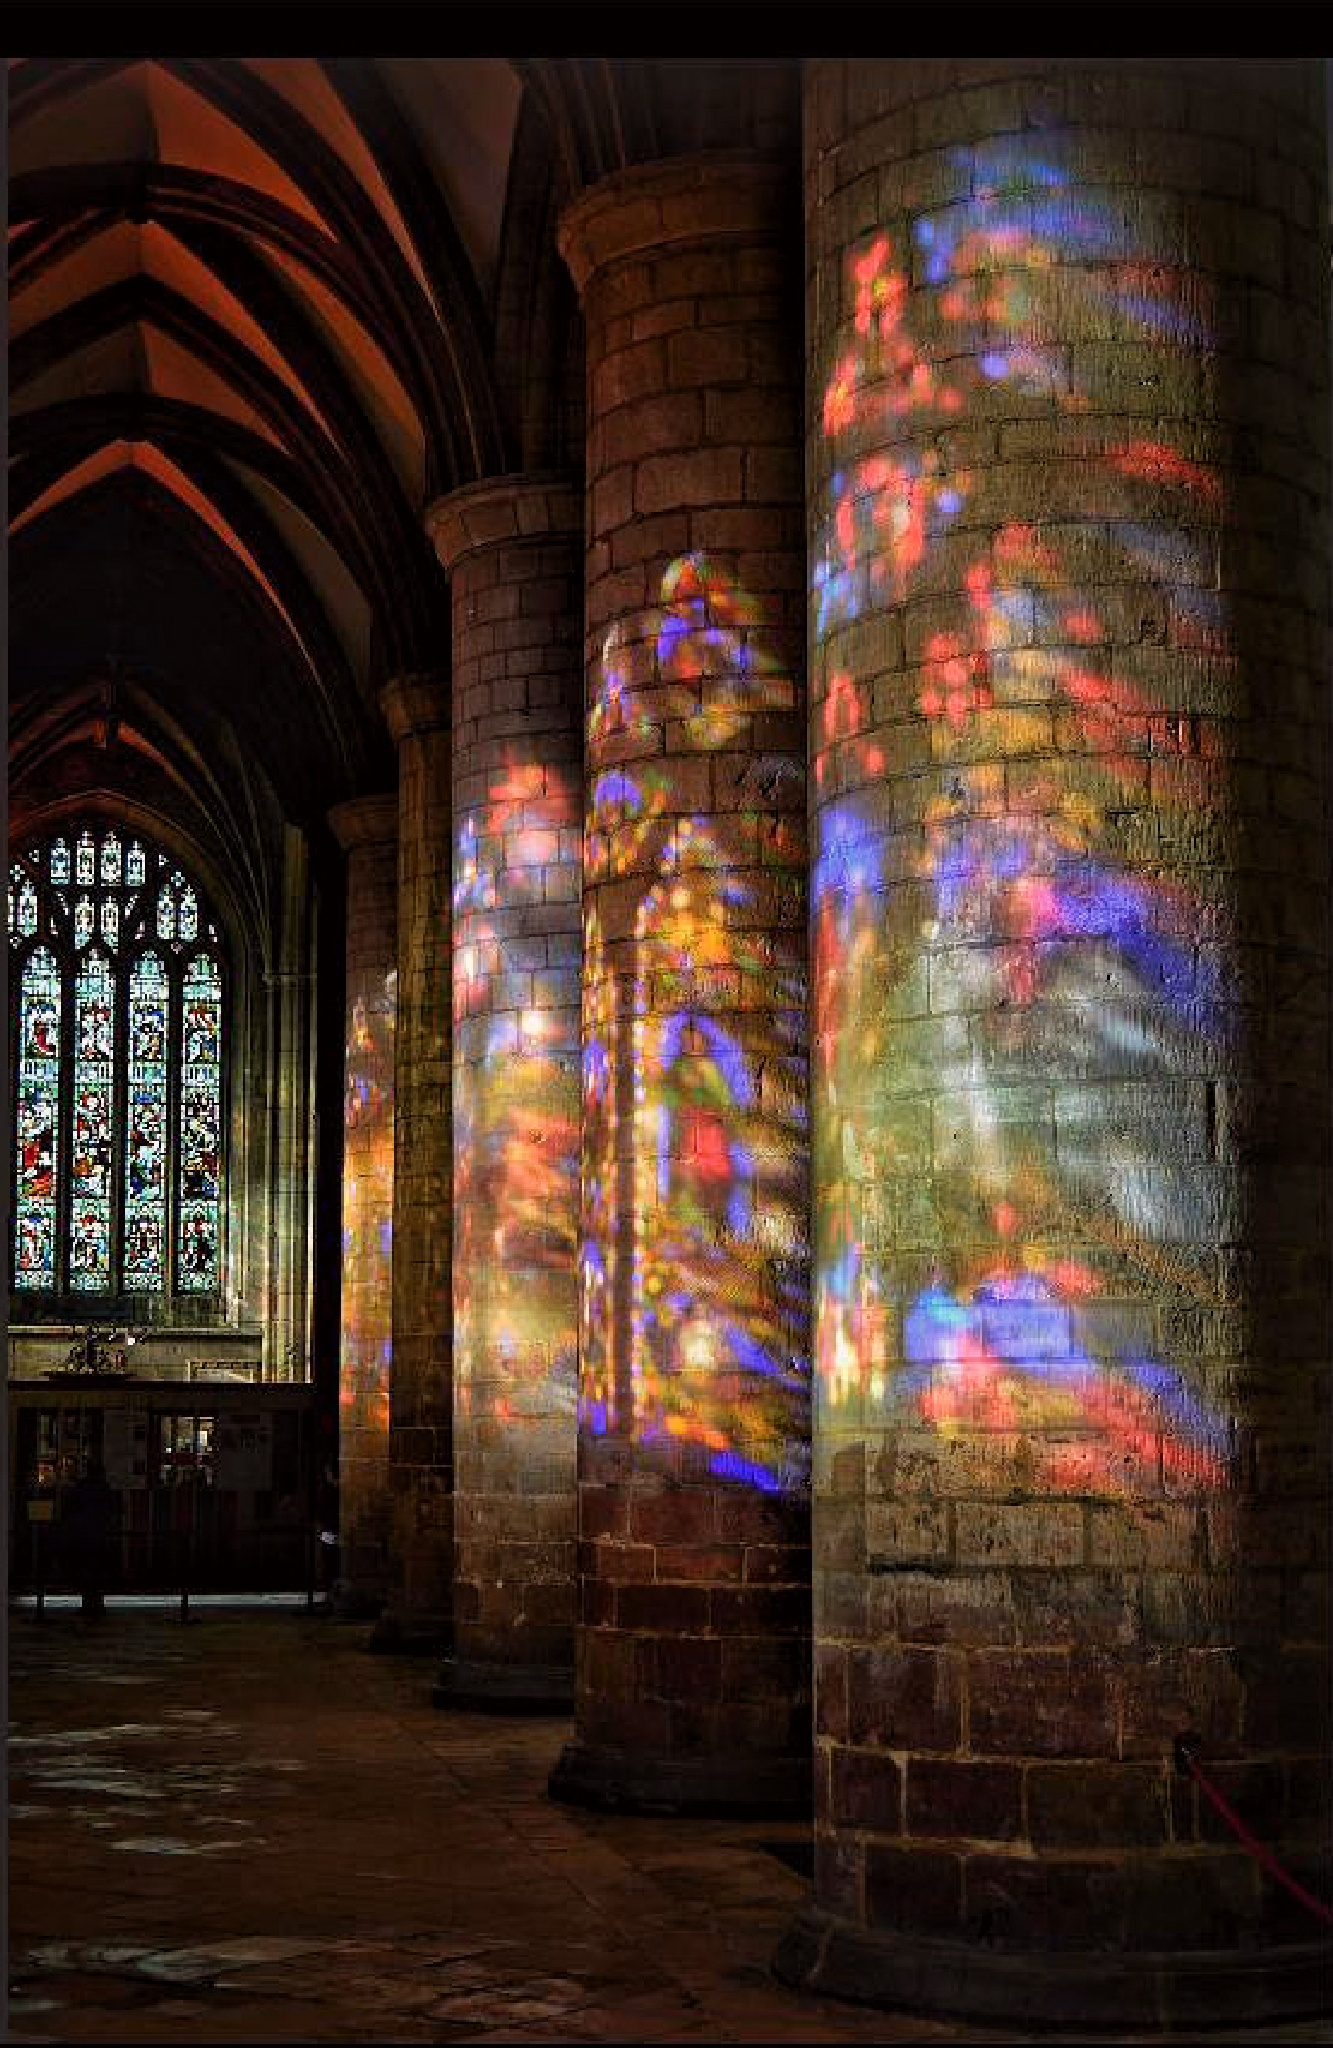 Light through stained glass windows, Gloucester Cathedral, UK by vincent mcnutt